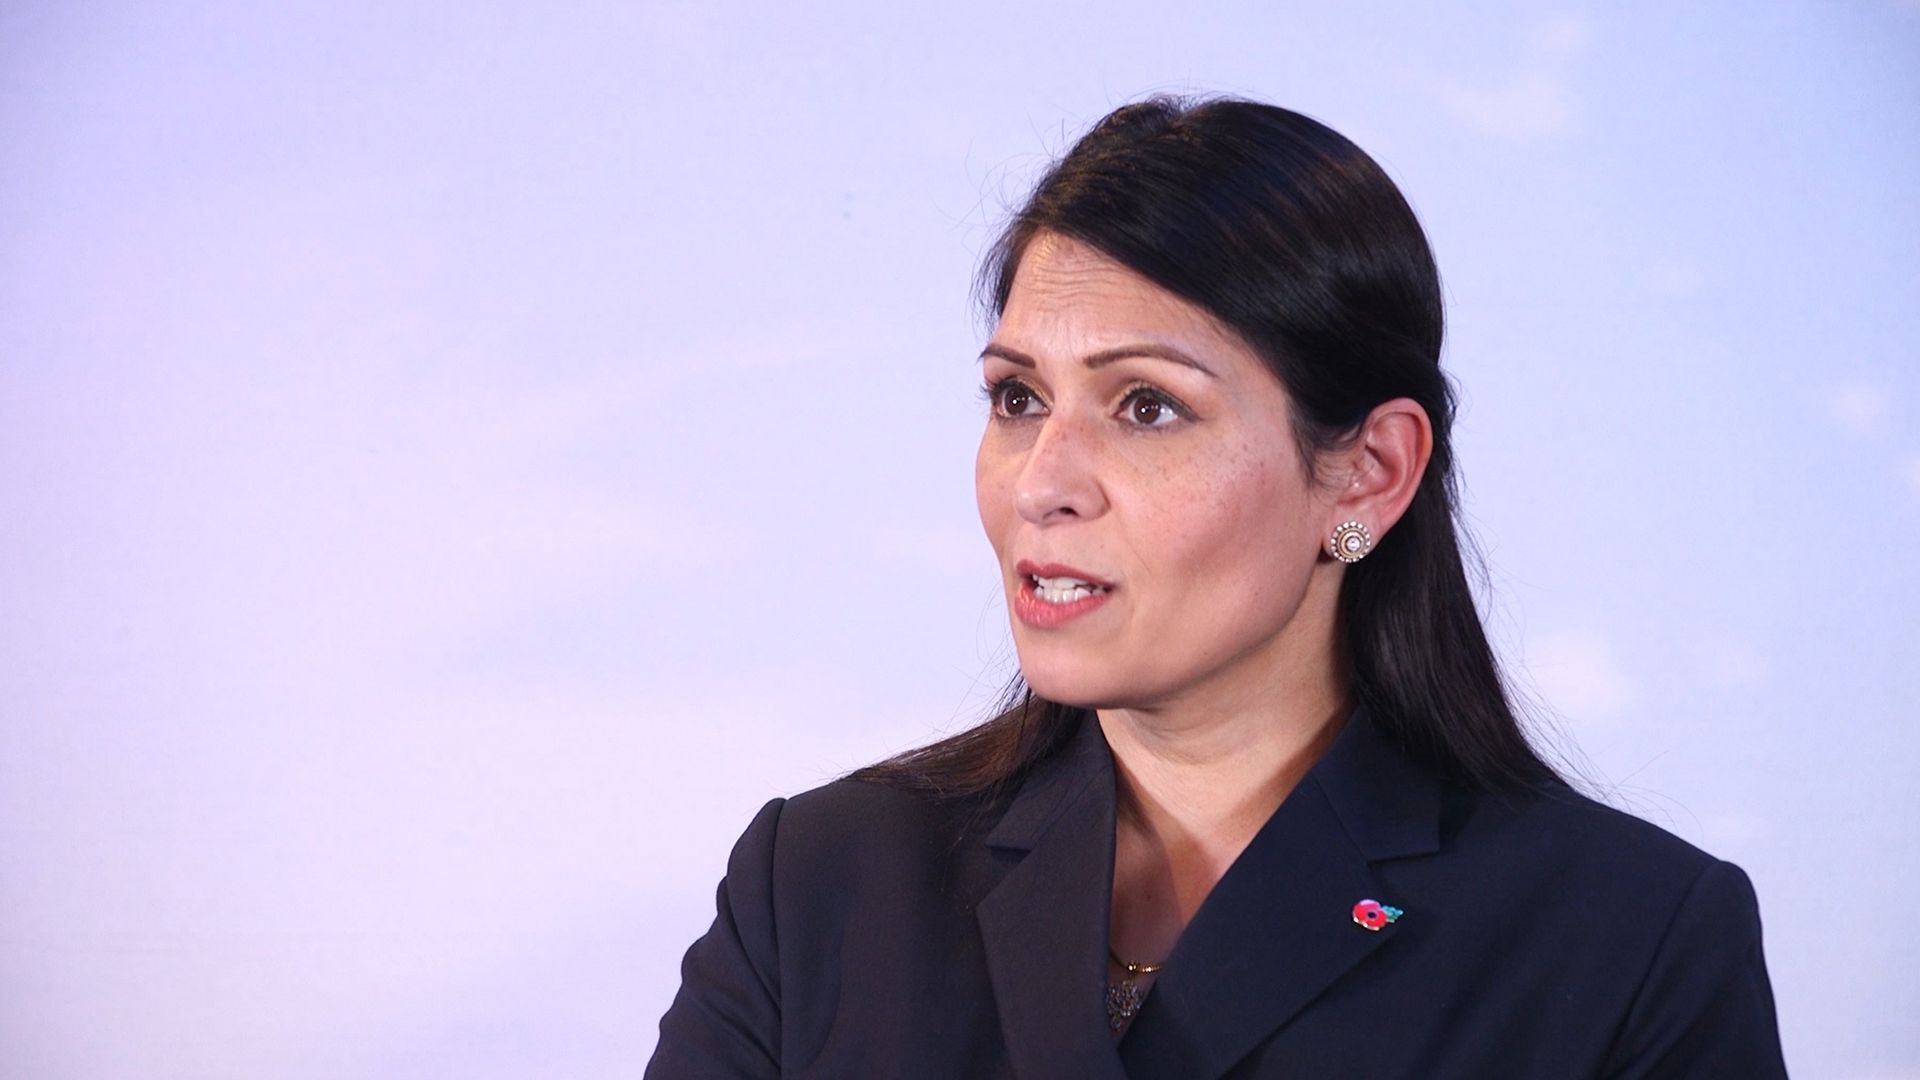 Home Office secretary Priti Patel has been accused of bullying her staff - Credit: PA